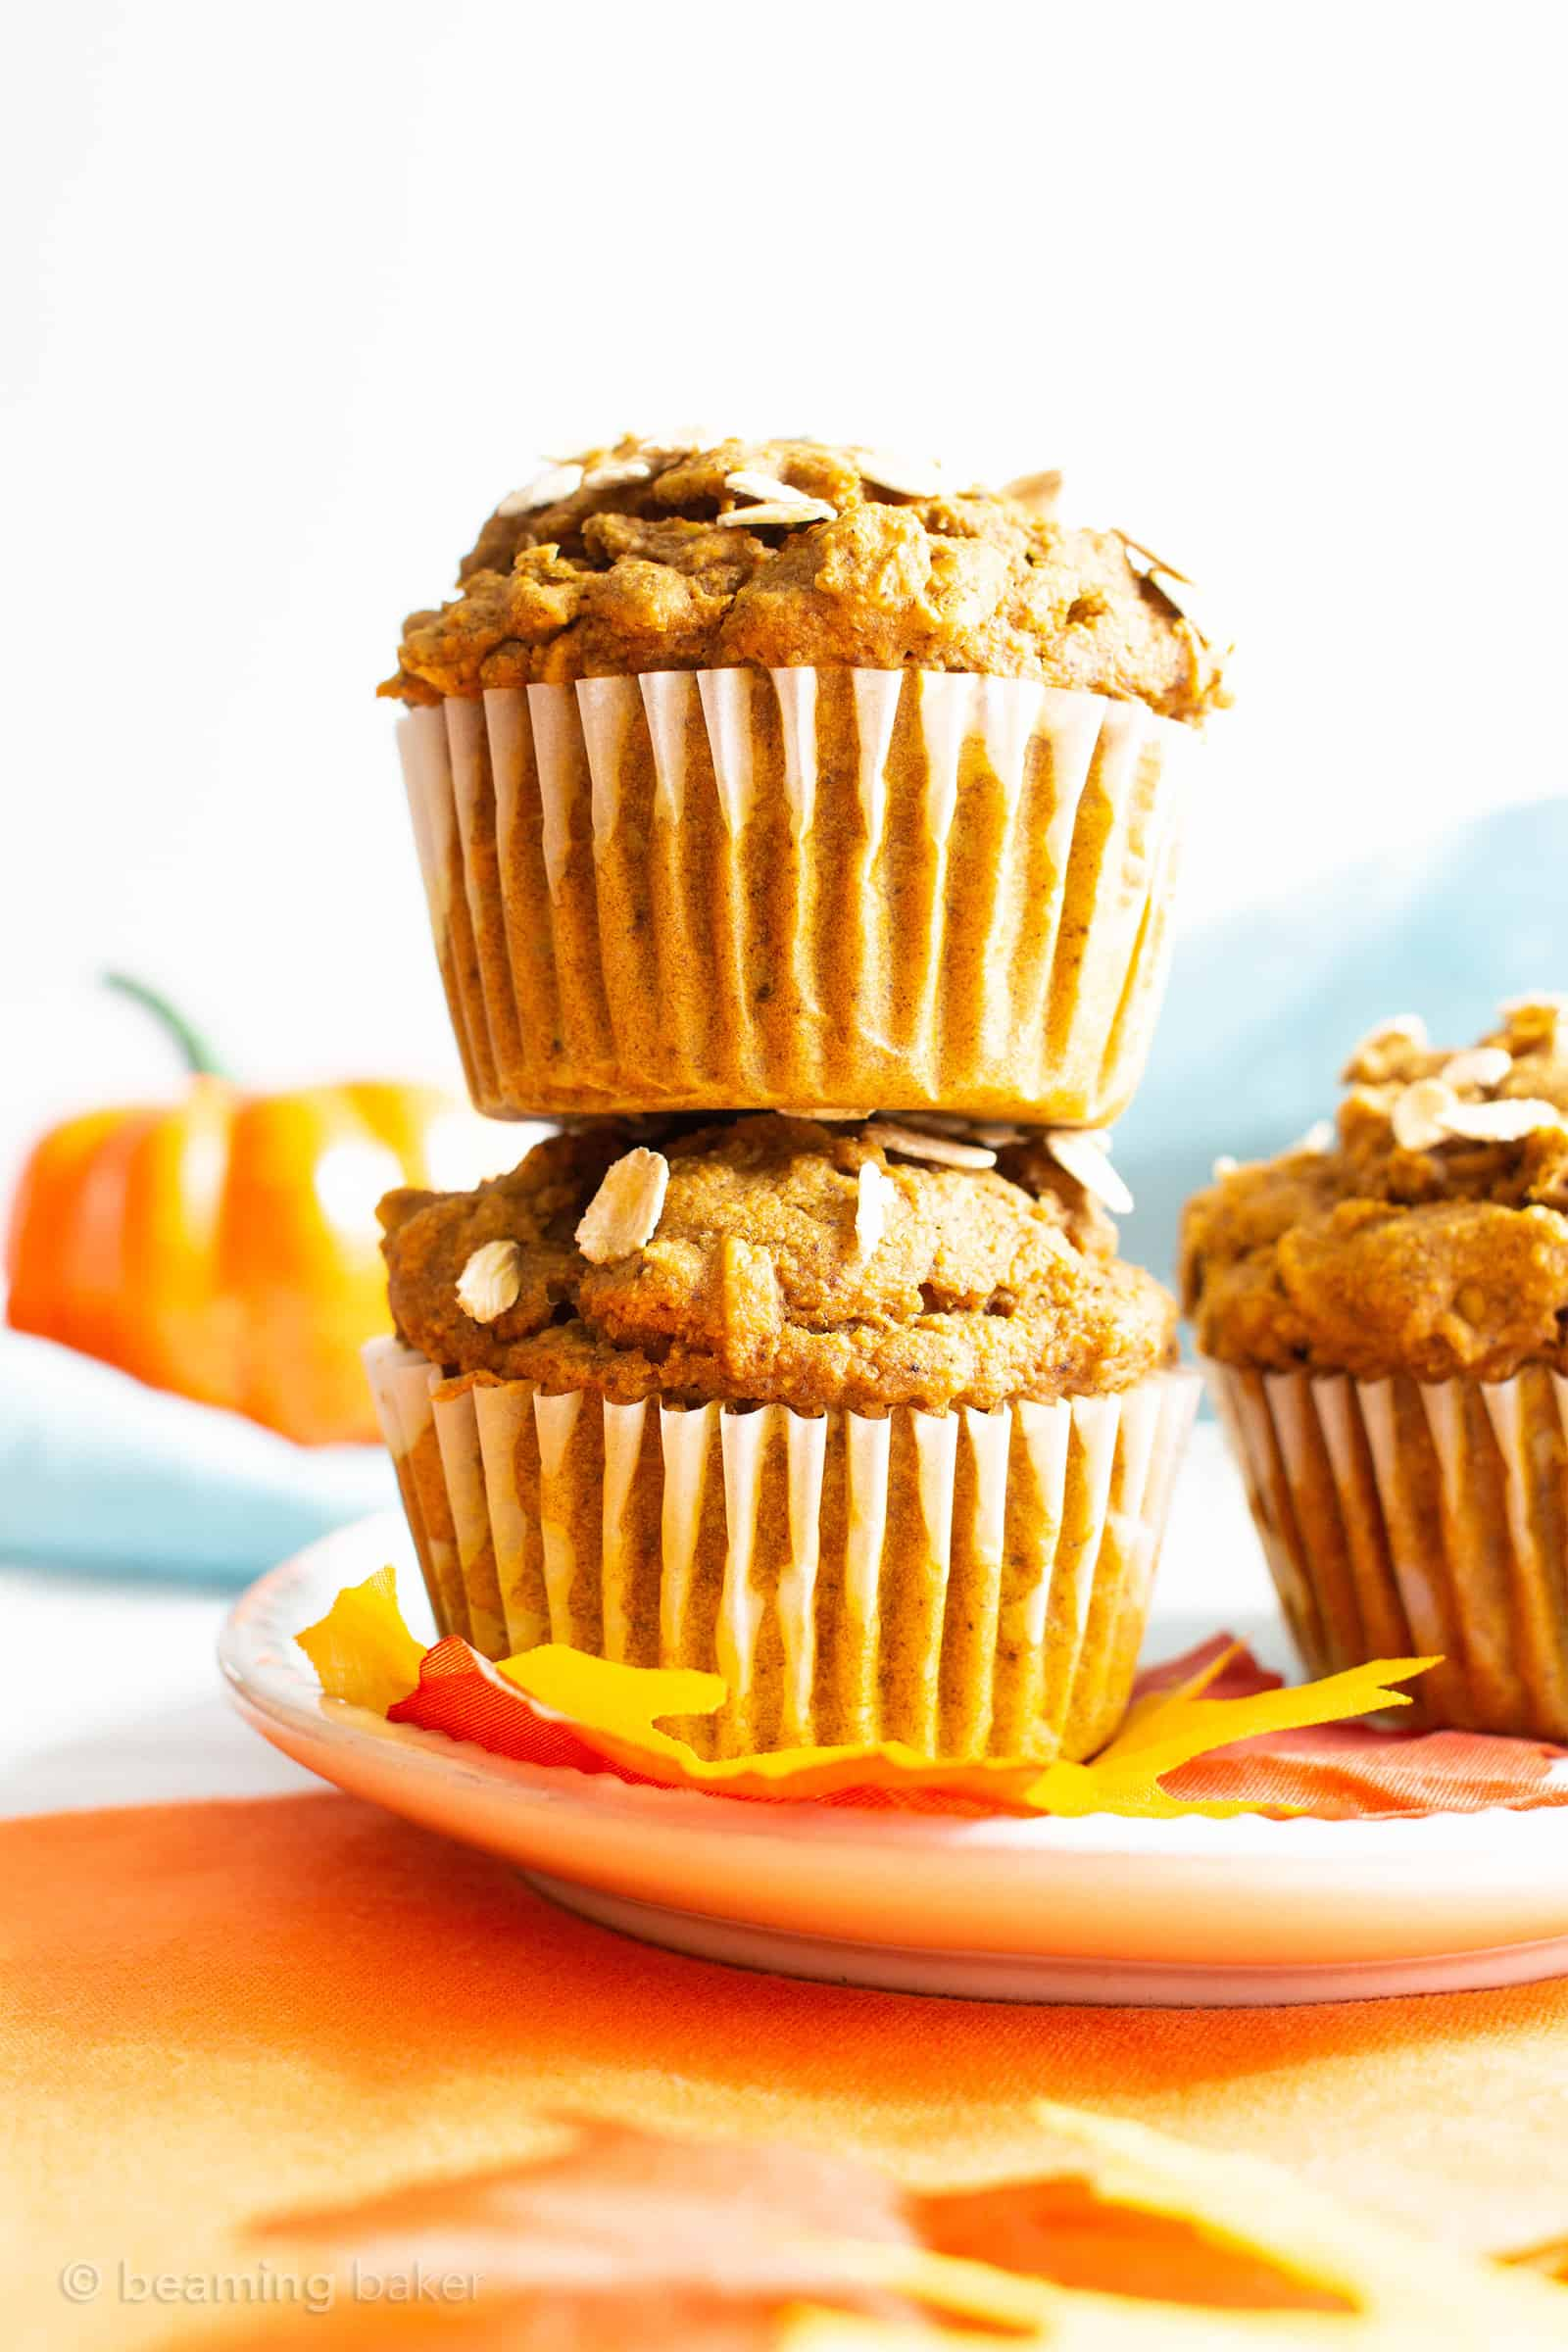 Healthy Pumpkin Oatmeal Muffins (V, GF): a one bowl recipe for lightly sweet and perfectly moist pumpkin muffins packed with healthy, whole ingredients. #Vegan #GlutenFree #DairyFree #GlutenFreeVegan #Pumpkin #Breakfast | Recipe on https://beamingbaker.com